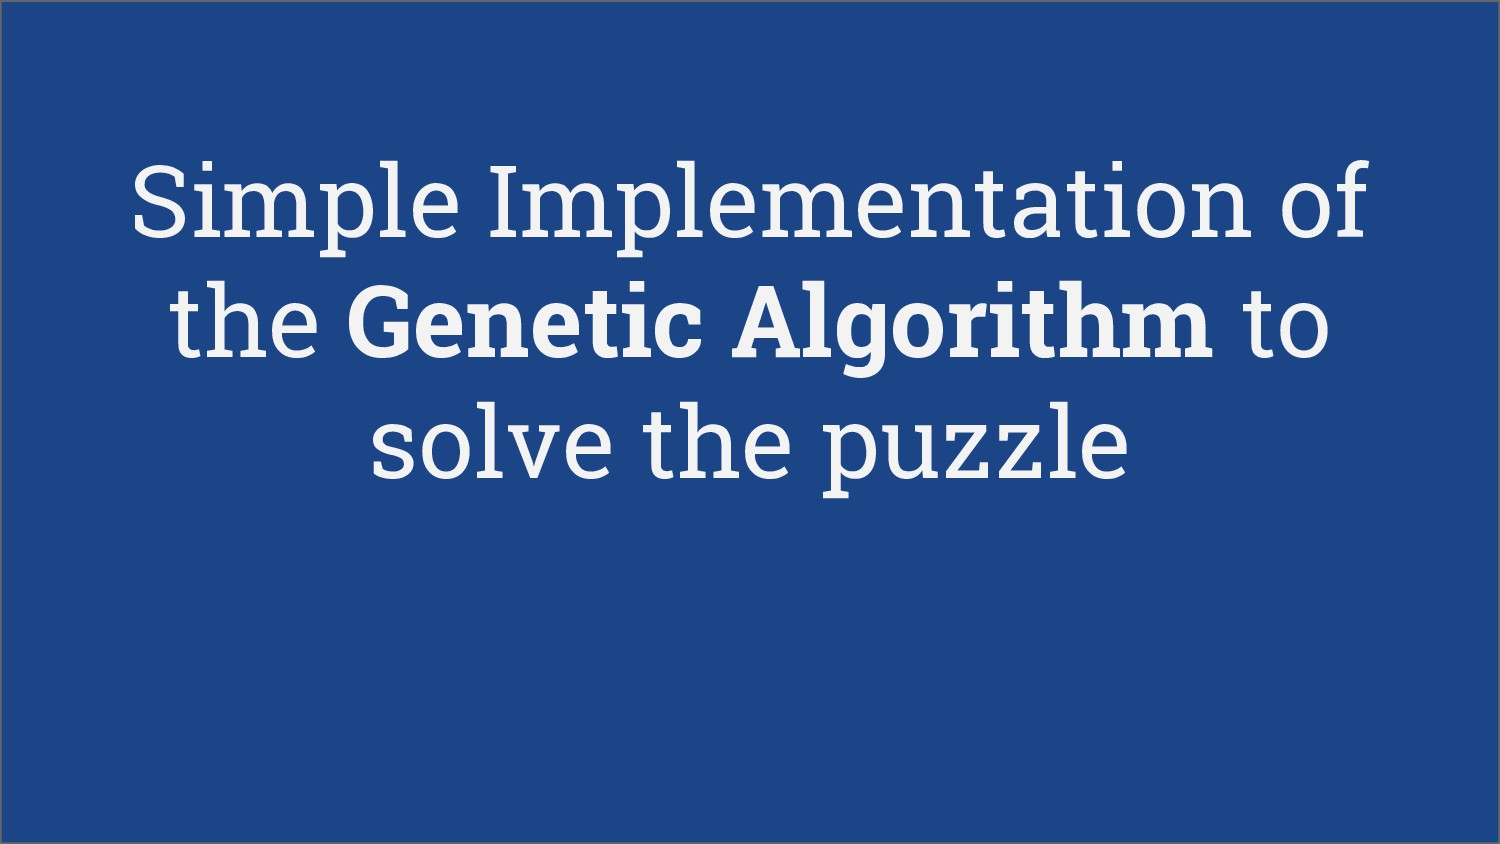 Simple Implementation of the Genetic Algorithm ...